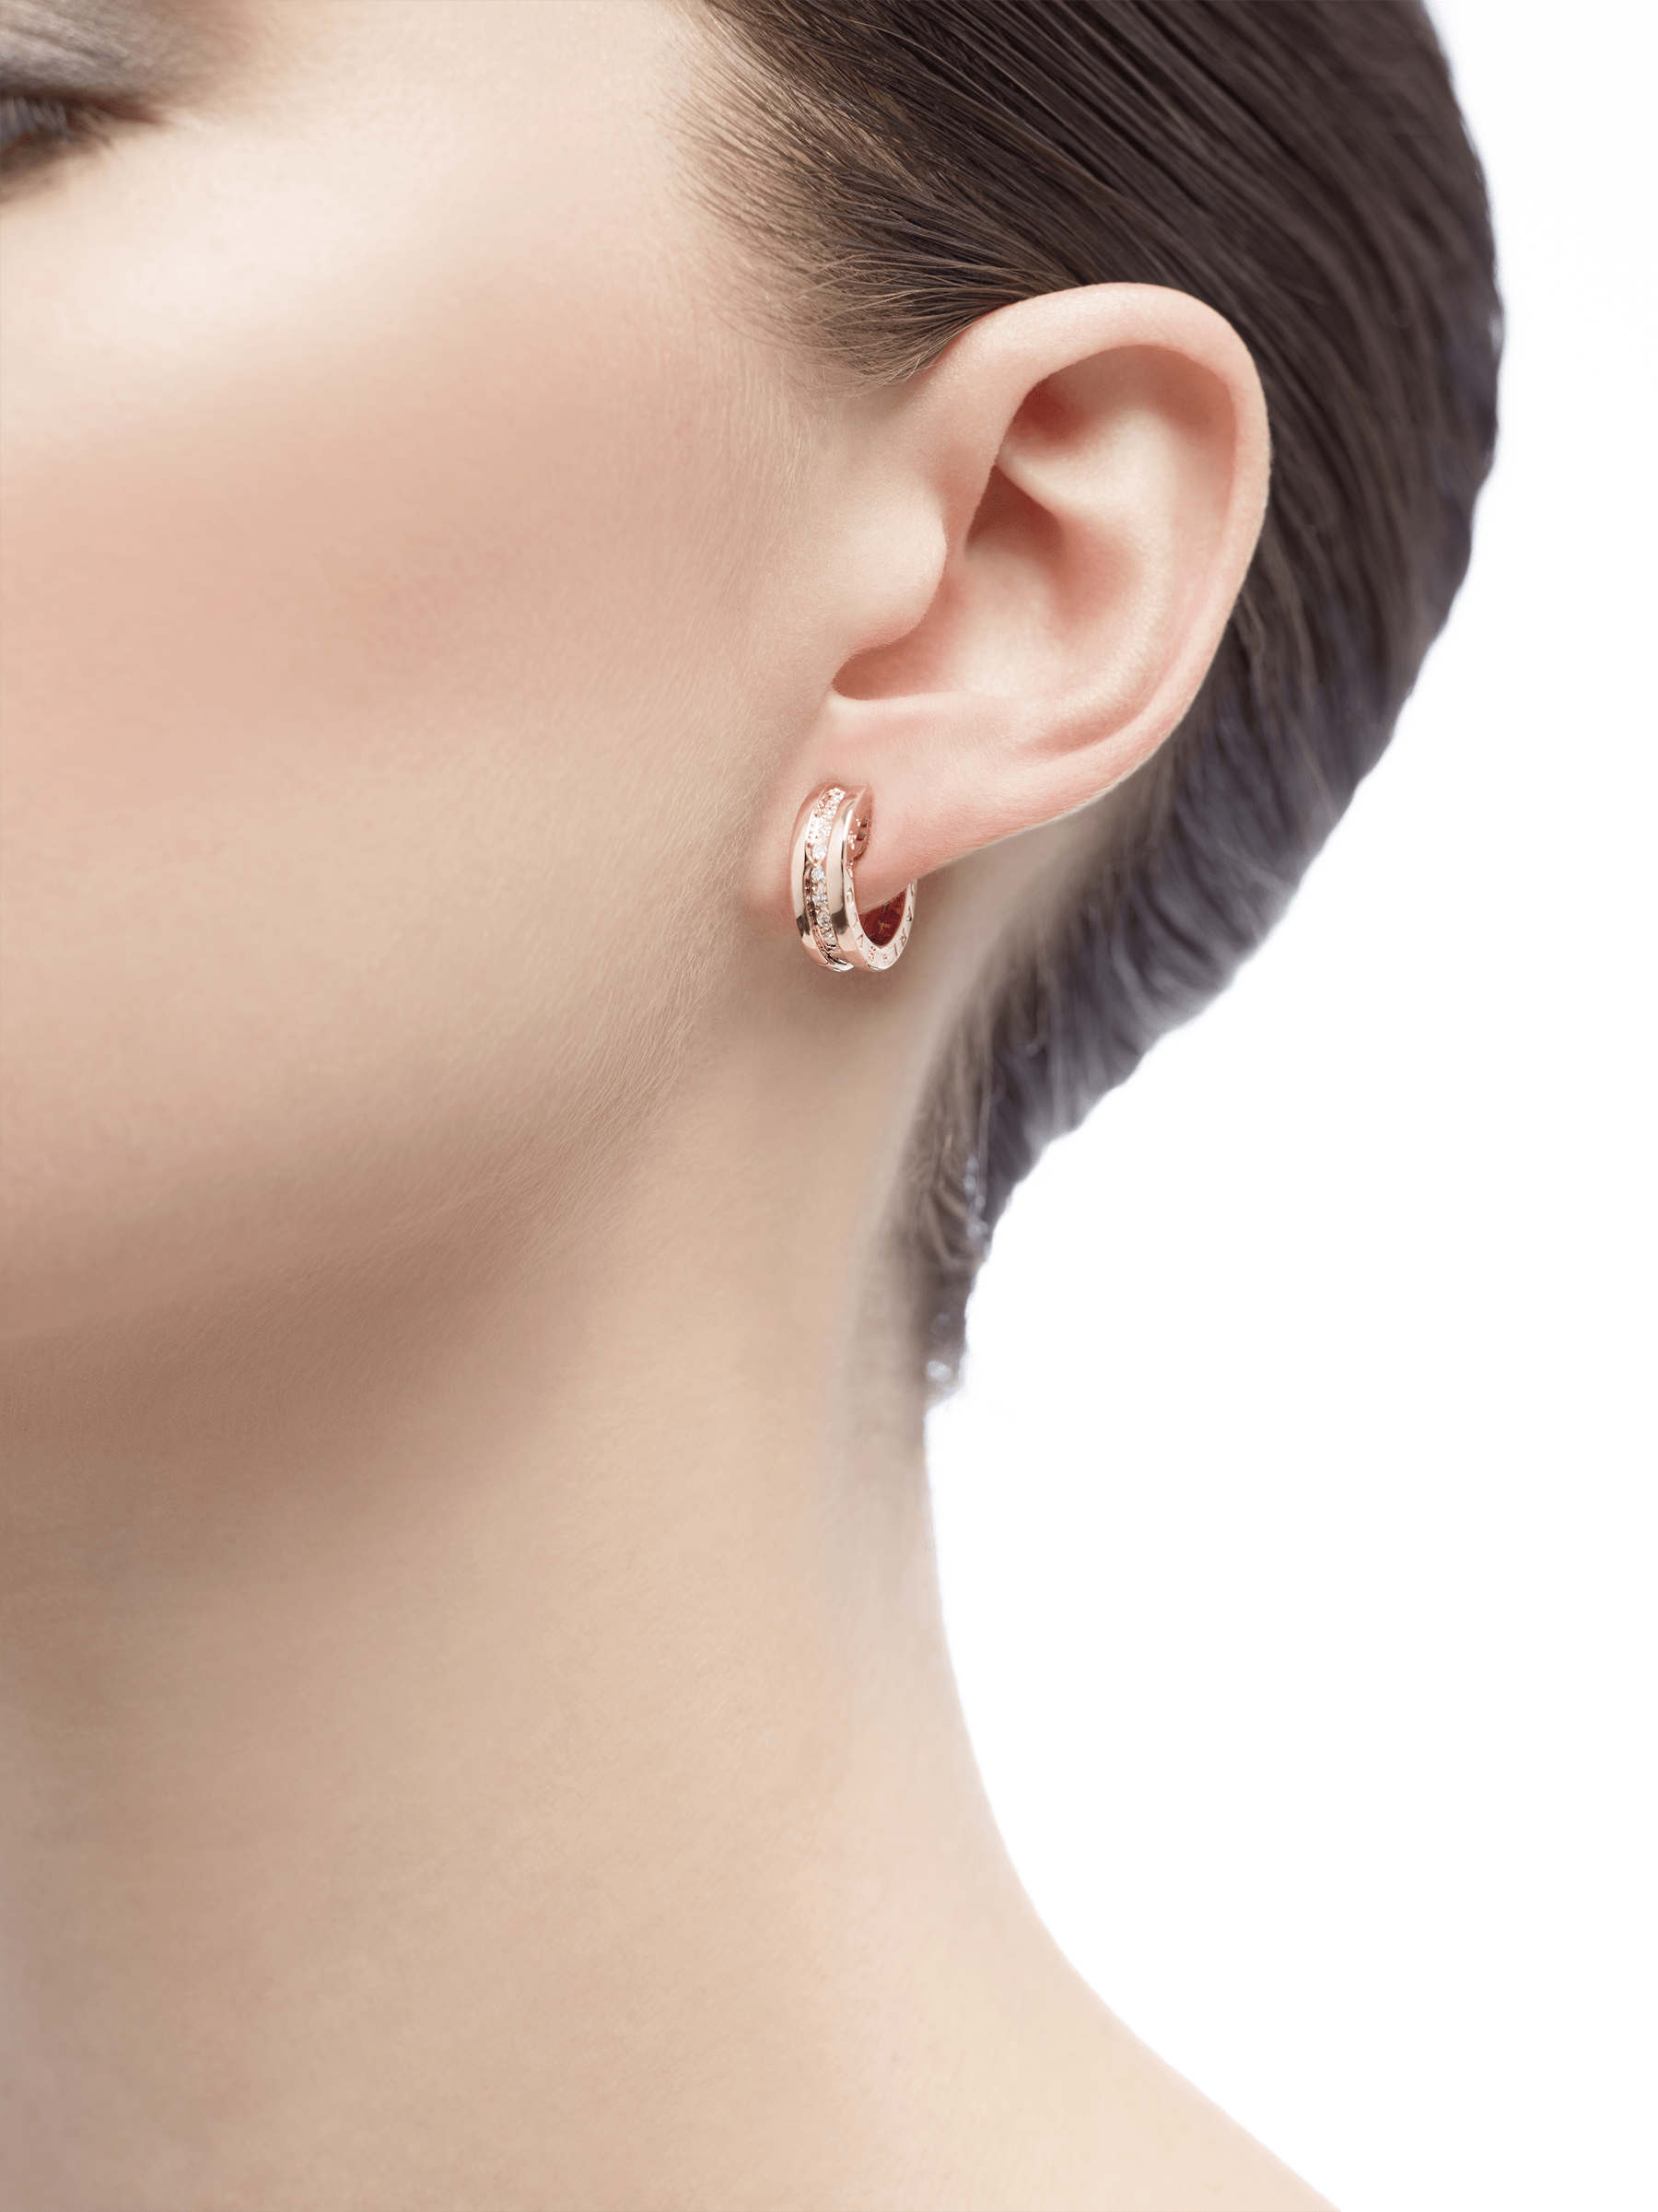 B.zero1 small hoop earrings in 18 kt rose gold set with pavé diamonds on the spiral. 348036 image 3